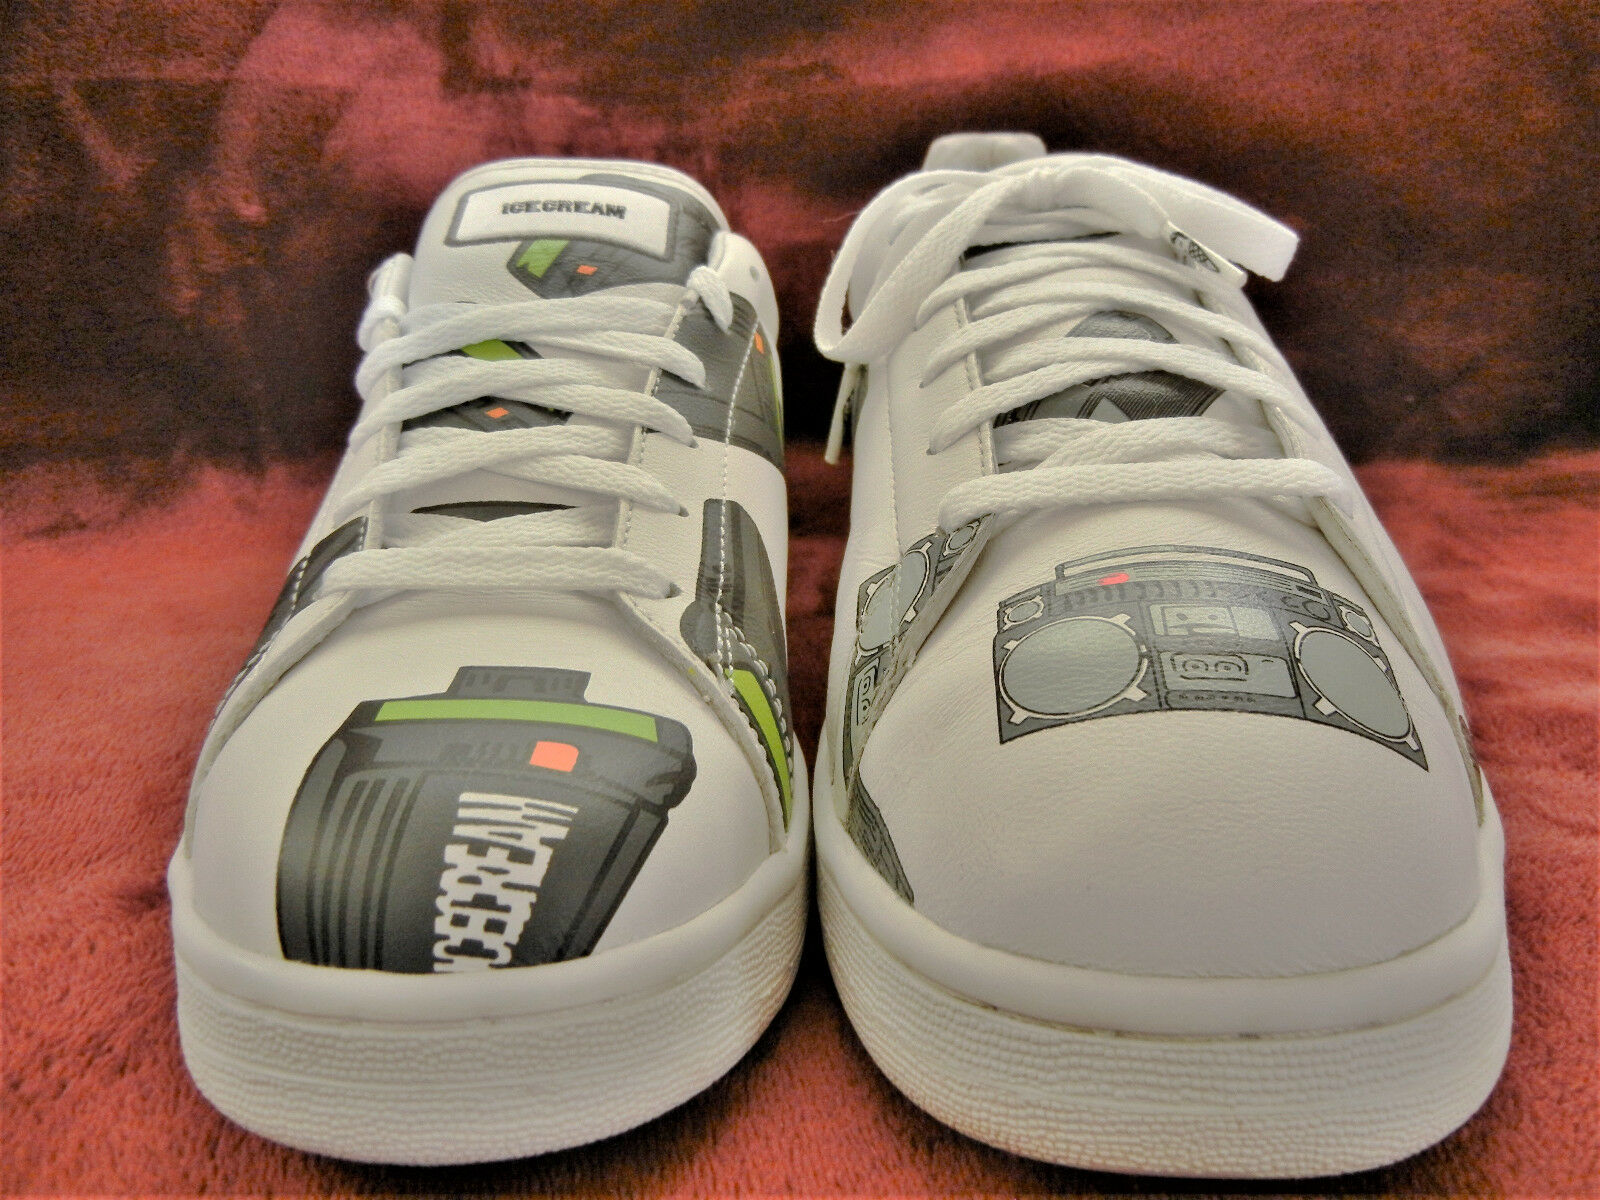 Reebok Ice Cream #BEEPER F/W 2006 JAPAN #Pager SIZE 8 WHT sneakers BBC #PHARRELL